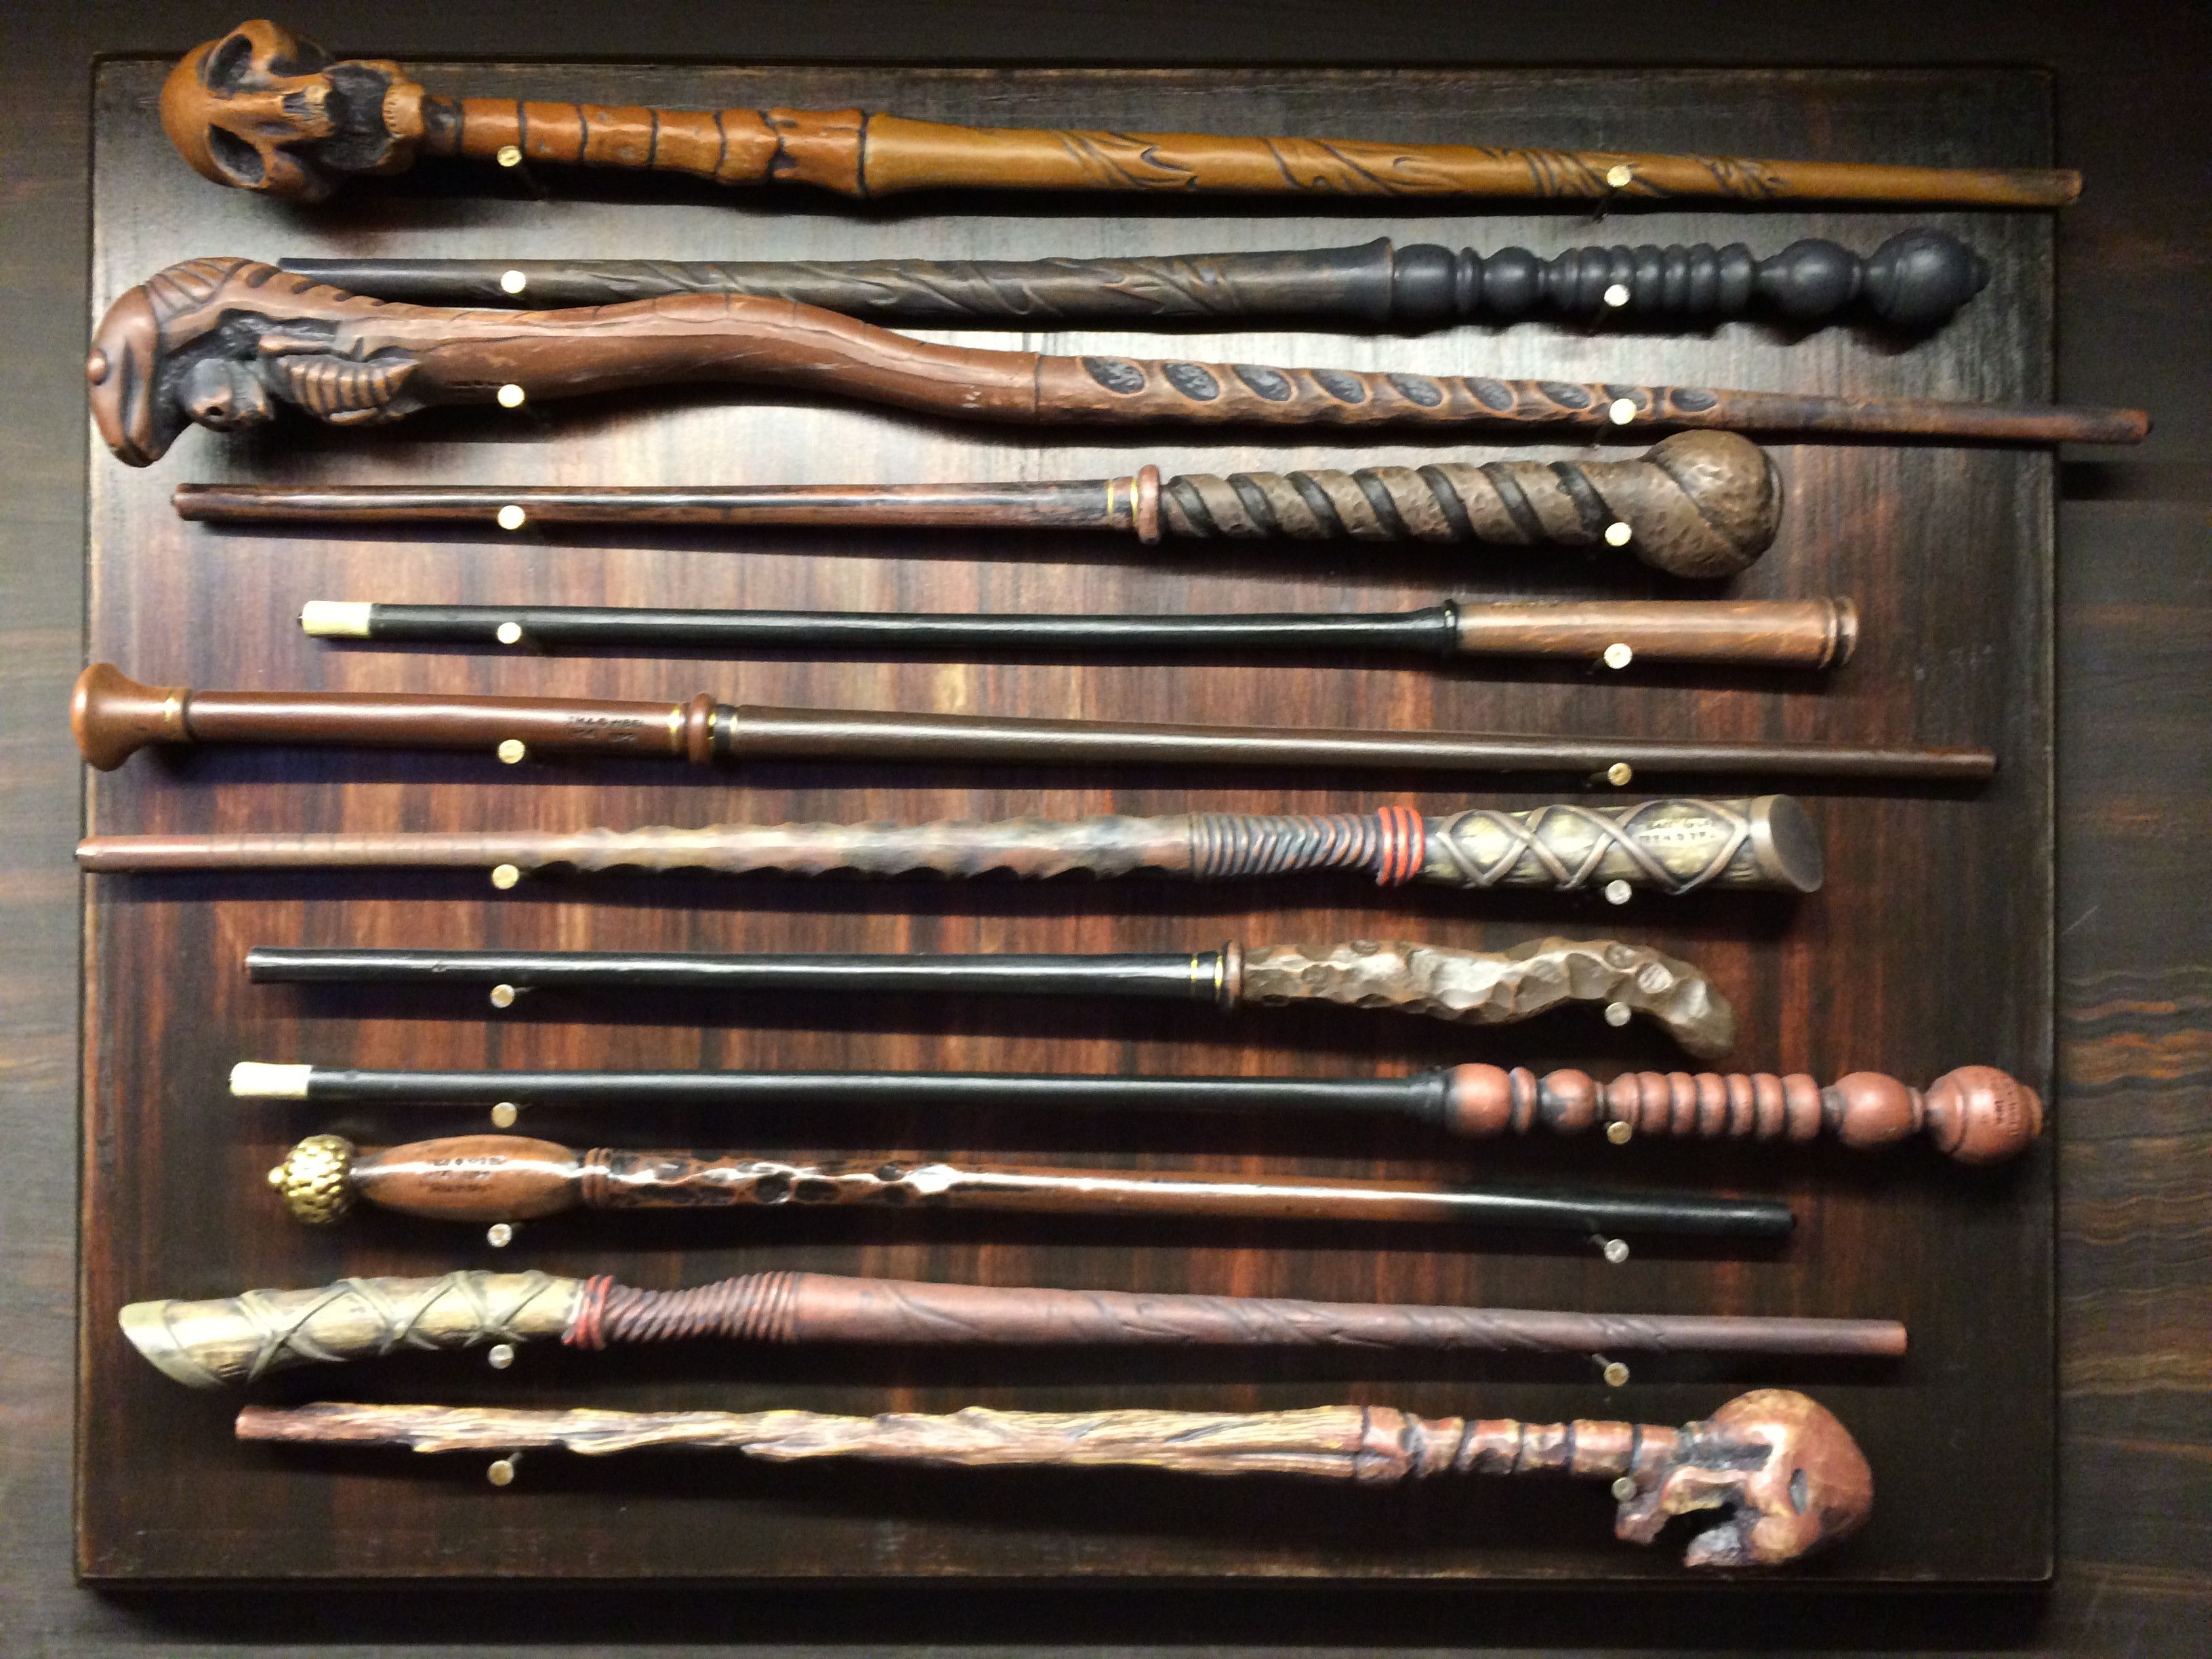 Ollivander S Wand Shop Diagon Alley At Universal Studios Florida Harry Potter Wands Universal Harry Potter Wand Wands